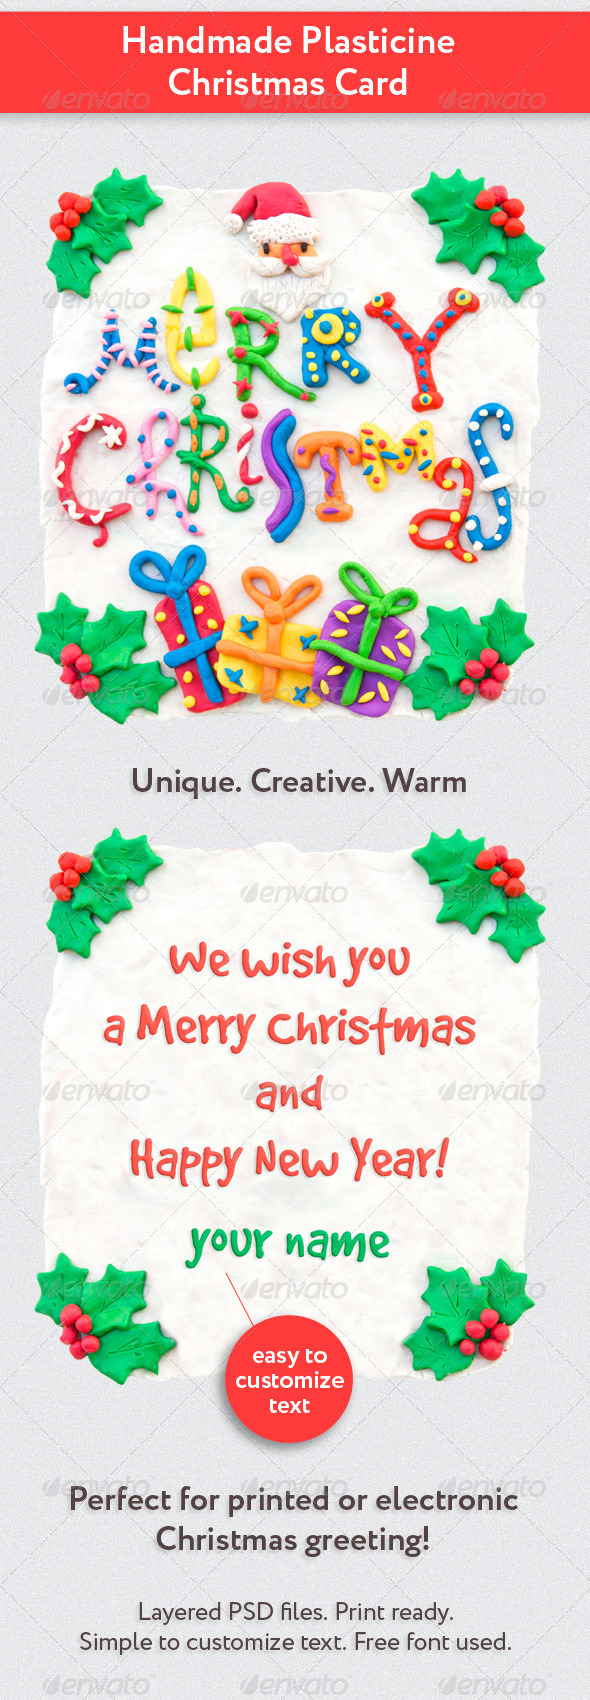 Handmade Plasticine Christmas Card - Holiday Greeting Cards